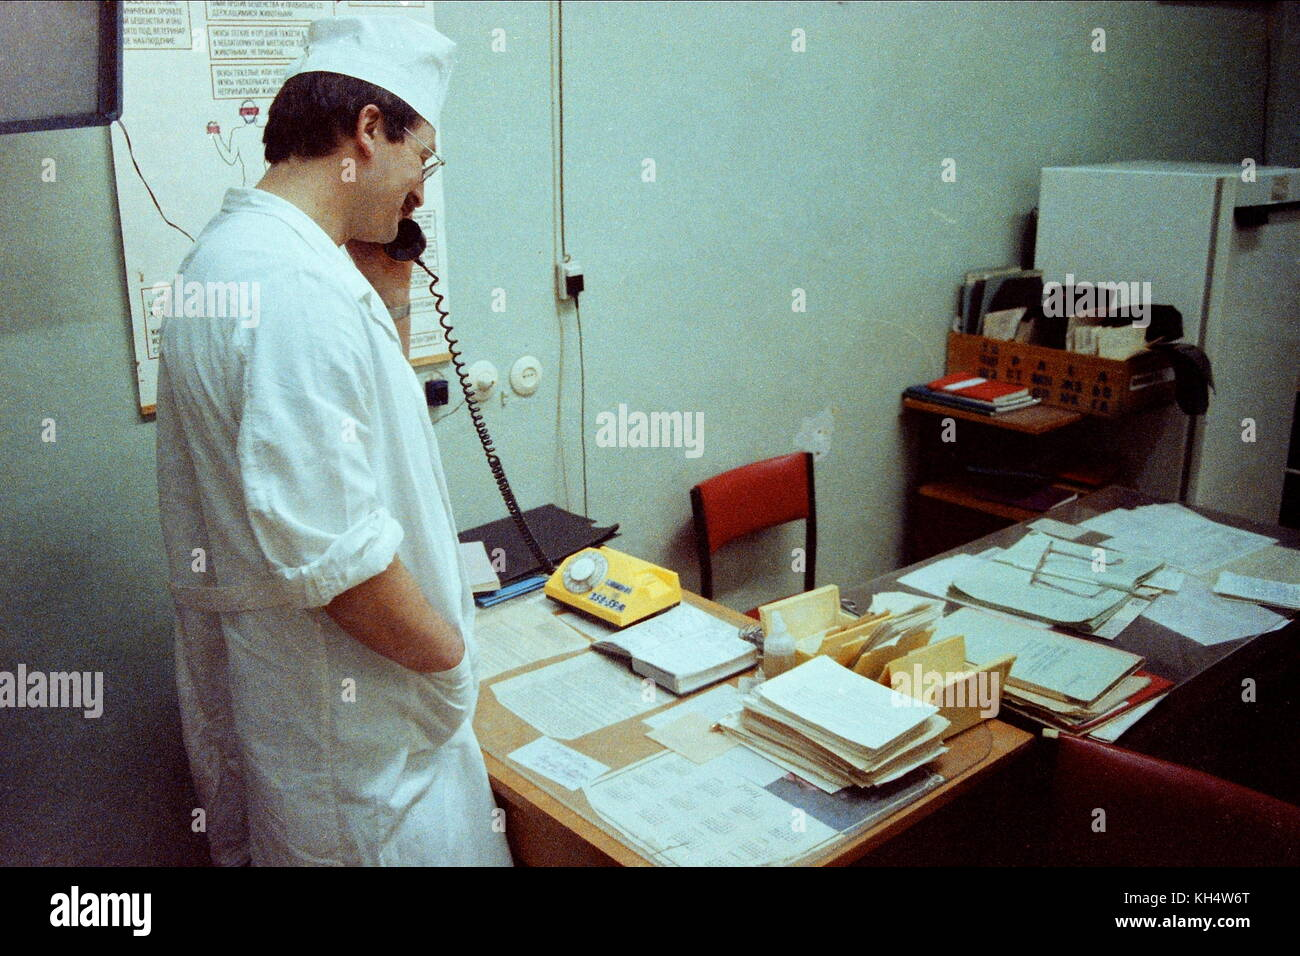 Dr Grigory Einghorn mounts night guard in a dispensary of Moscow center, Moscow, Federation of Russia - Stock Image